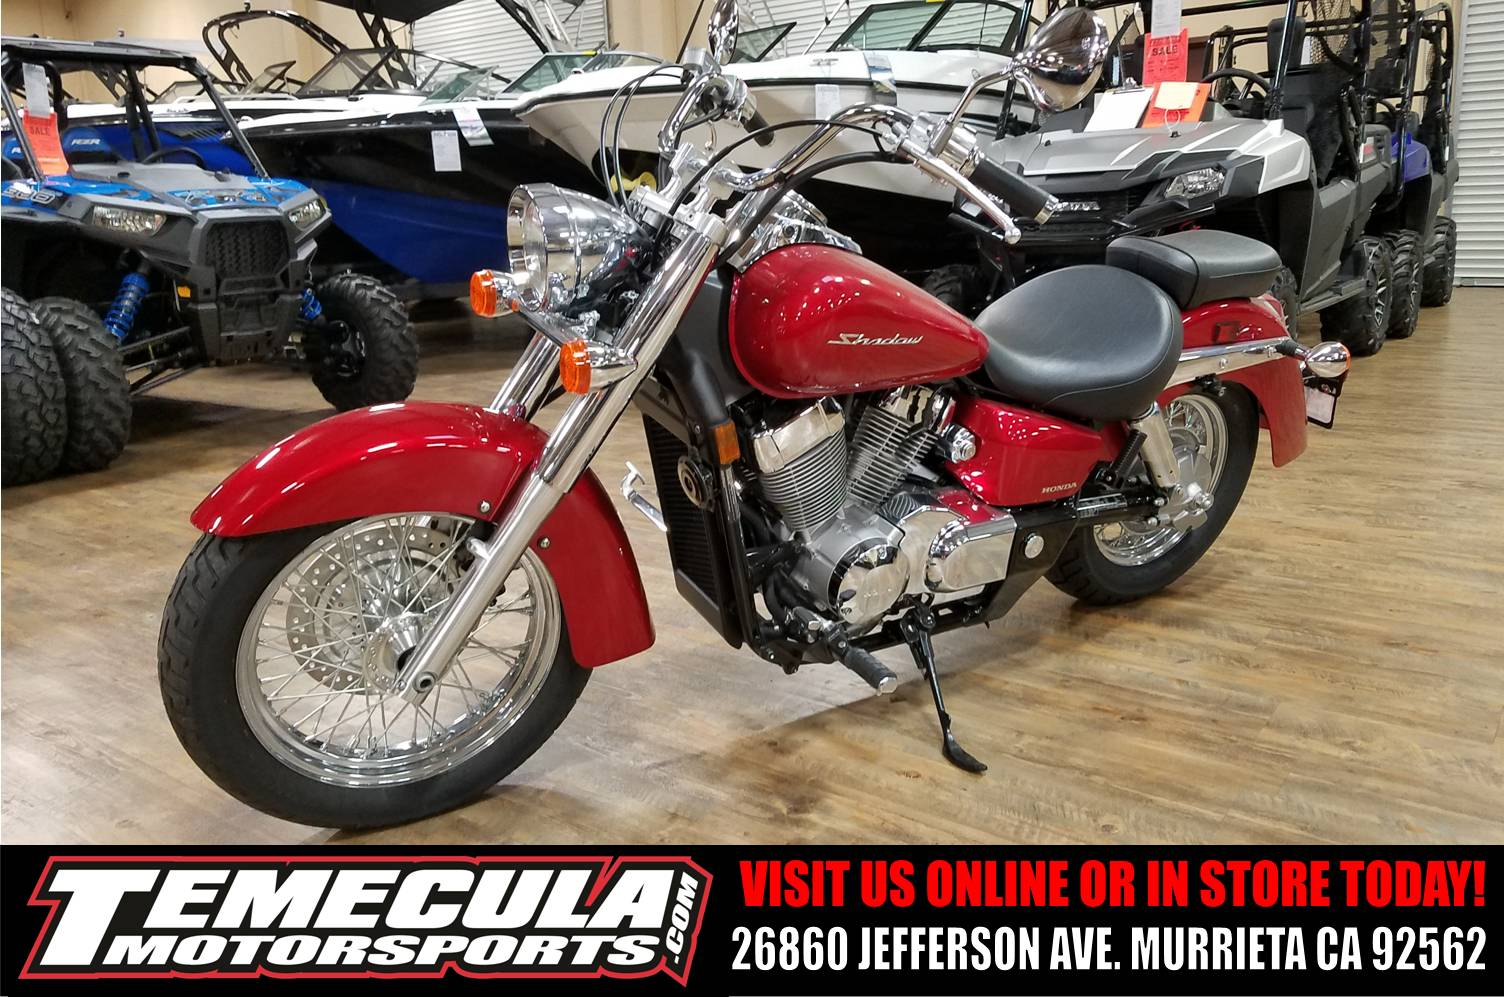 2016 Honda Shadow Aero in Murrieta, California